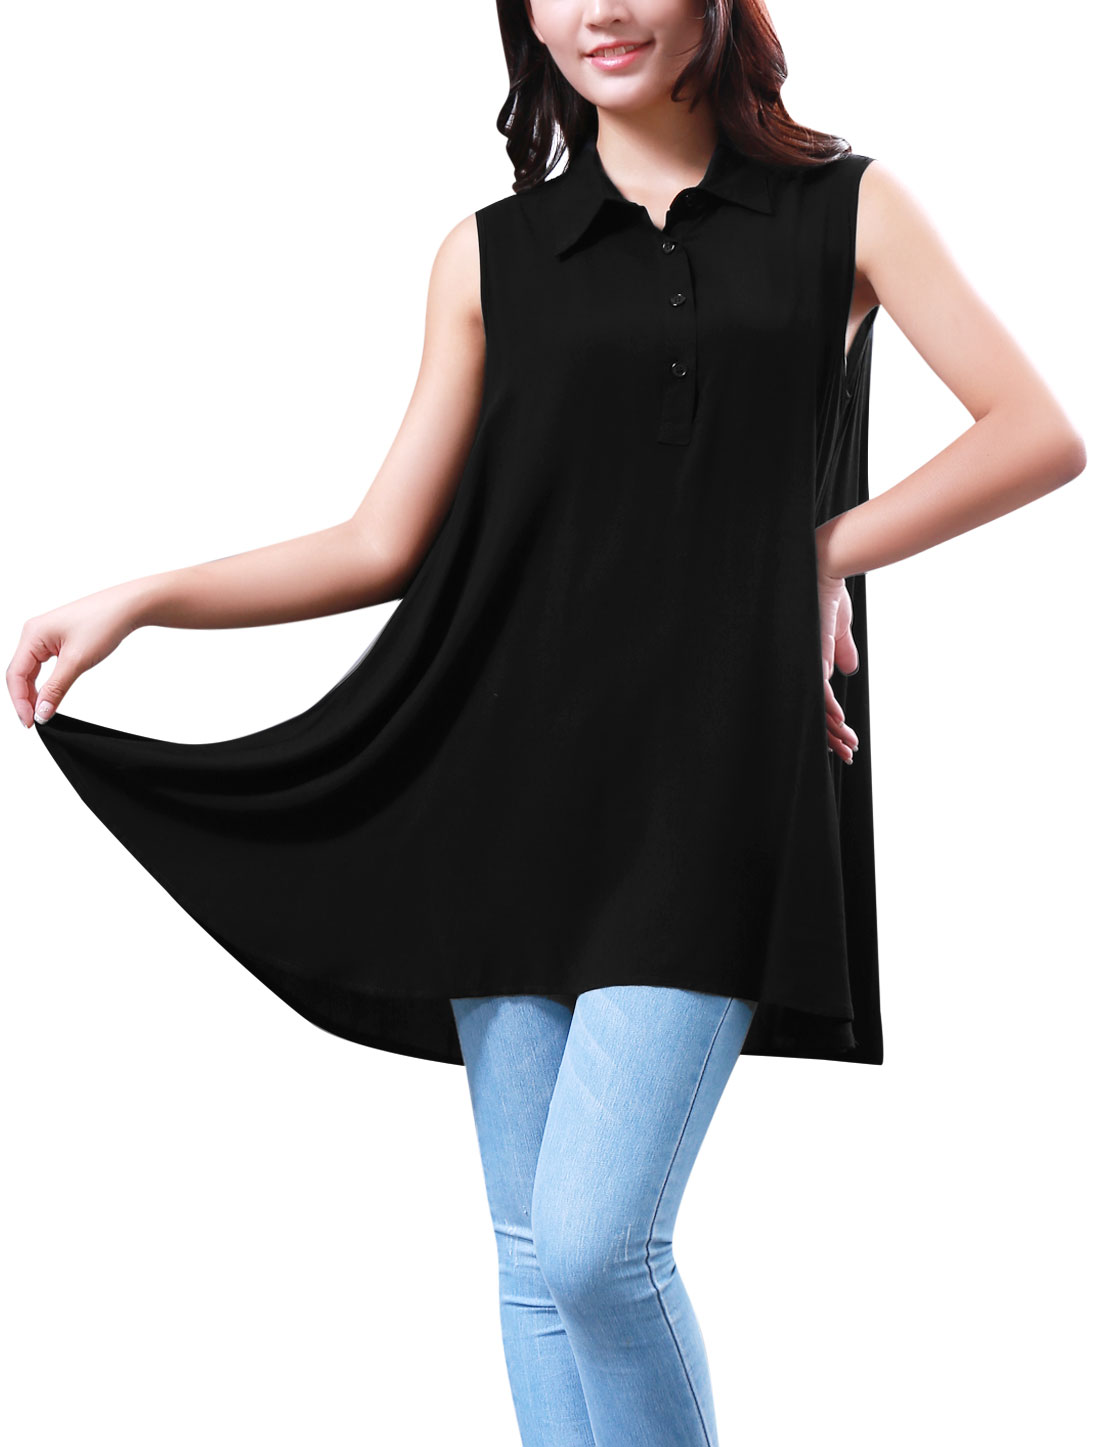 See Through Lace Spliced Back Irregular Hem Top Shirt for Woman Black XS